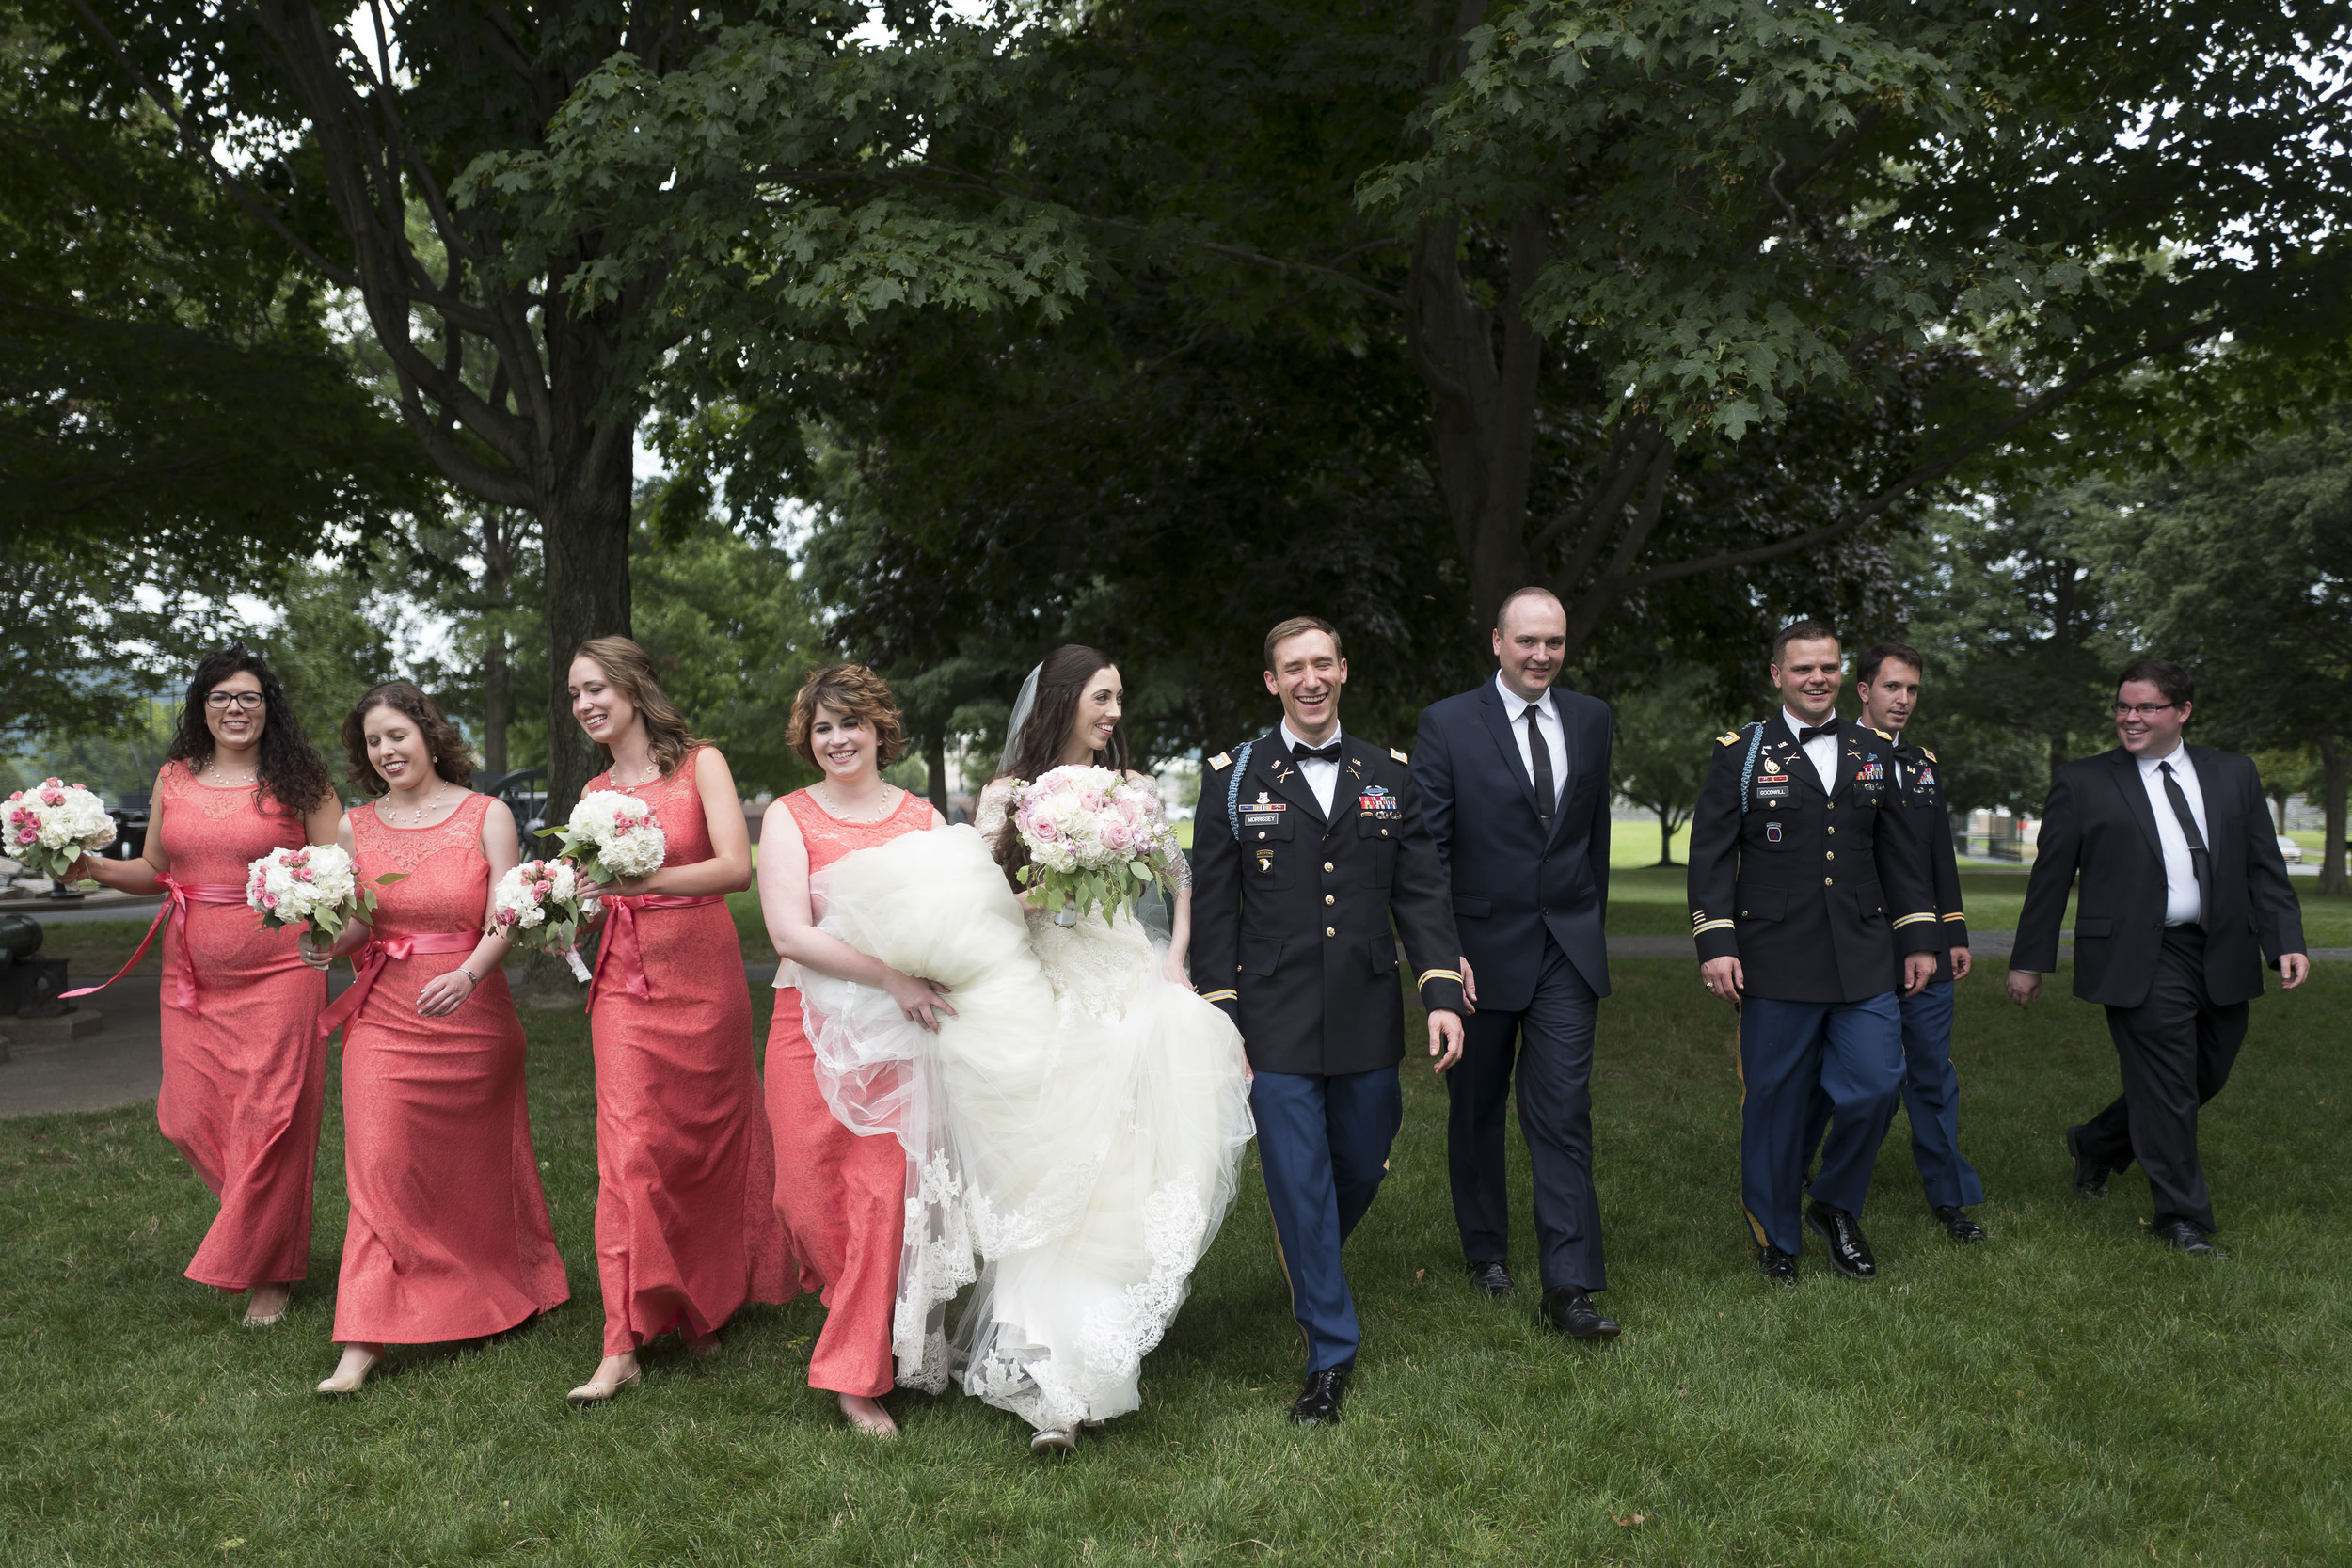 West_Point_Wedding_Photographer_NY_3029.JPG